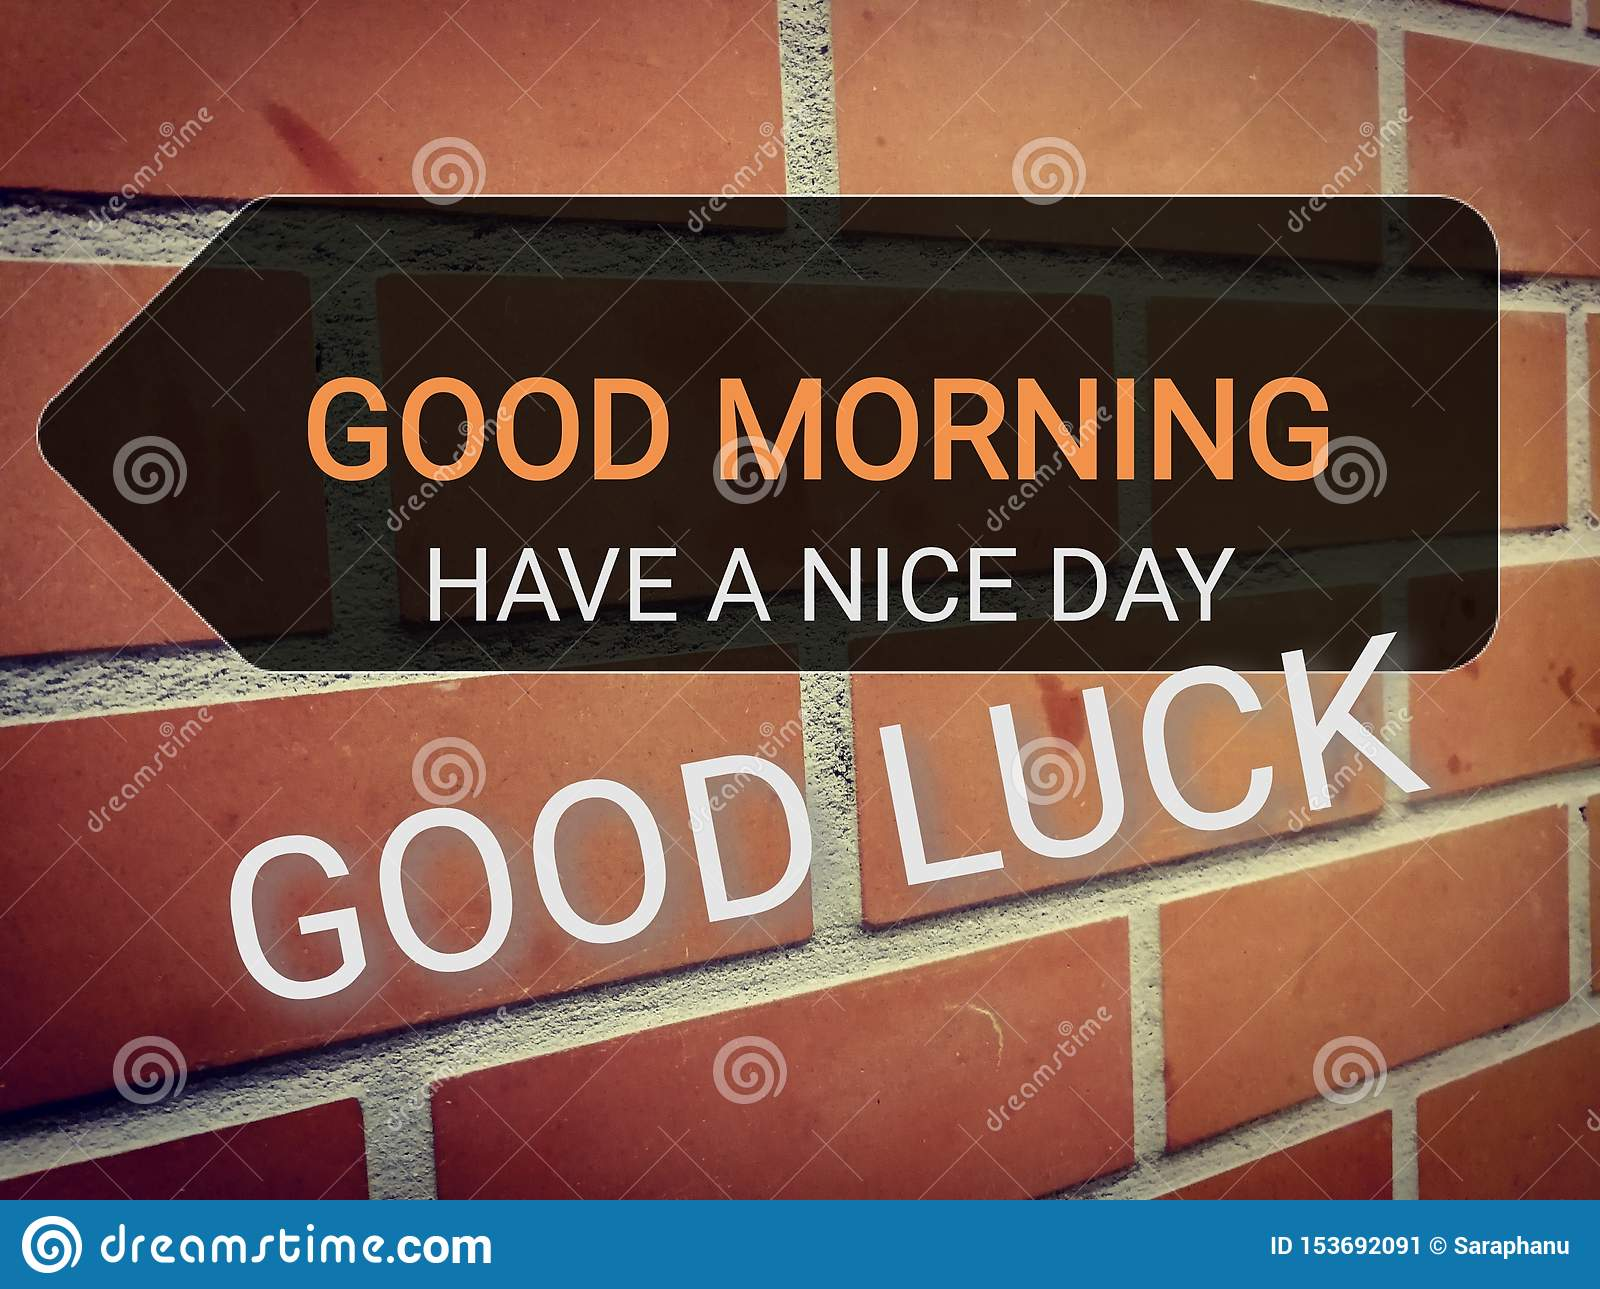 Phrase Good Morning Have A Nice Day And Good Luck On Brown Brick Wall Stock Illustration Illustration Of Nice Brick 153692091